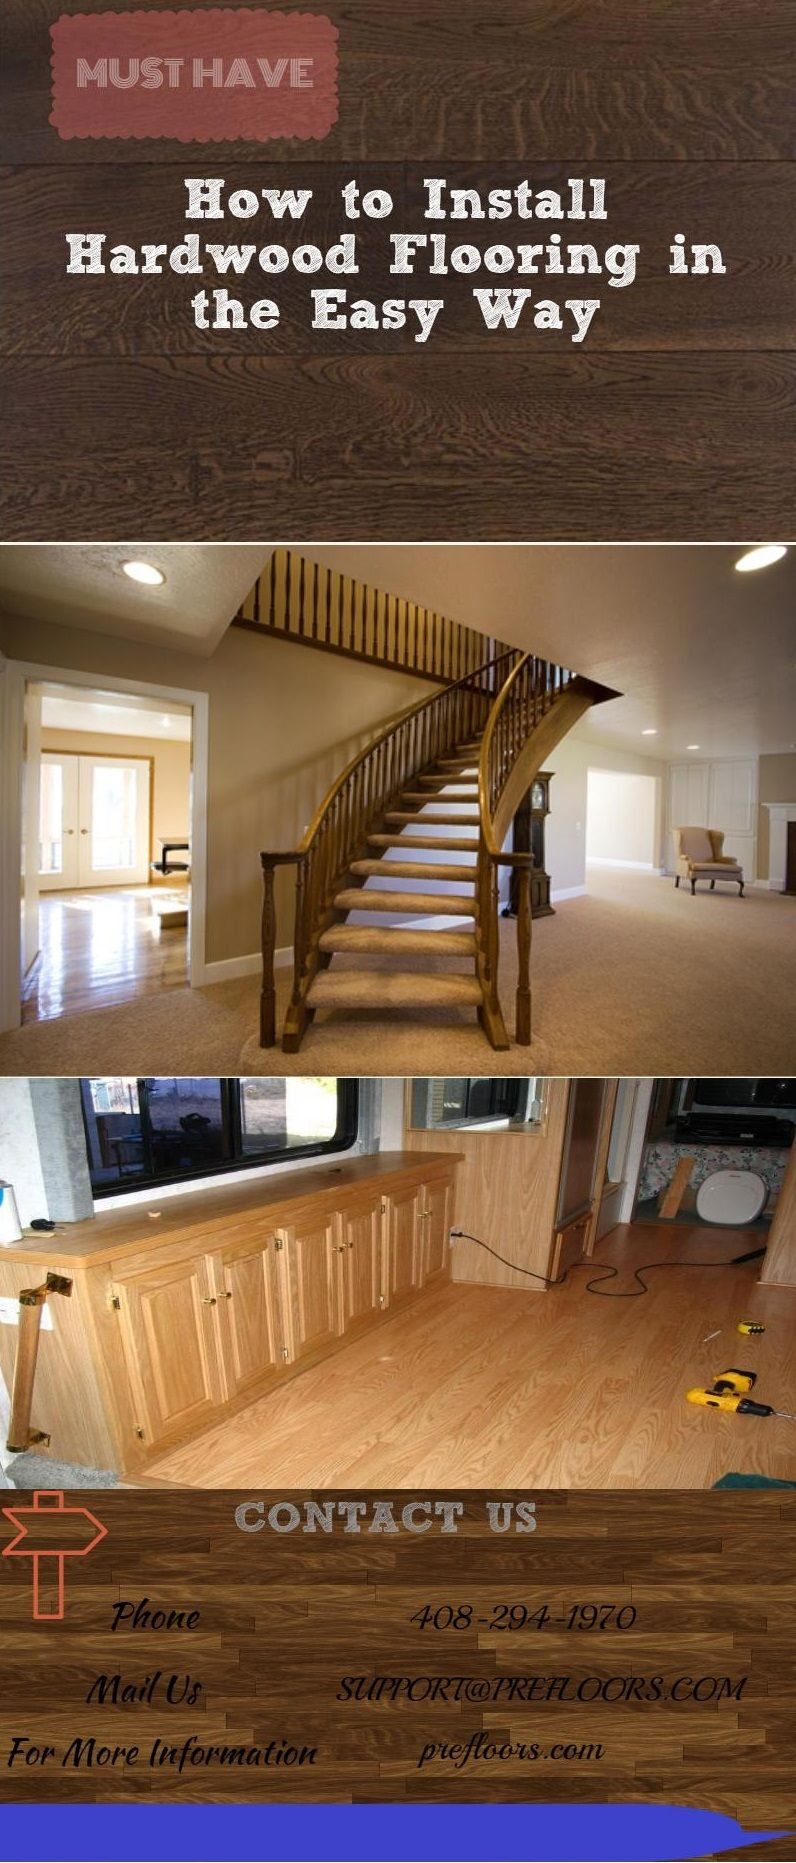 How to Install Hardwood Flooring in the Easy Way On the